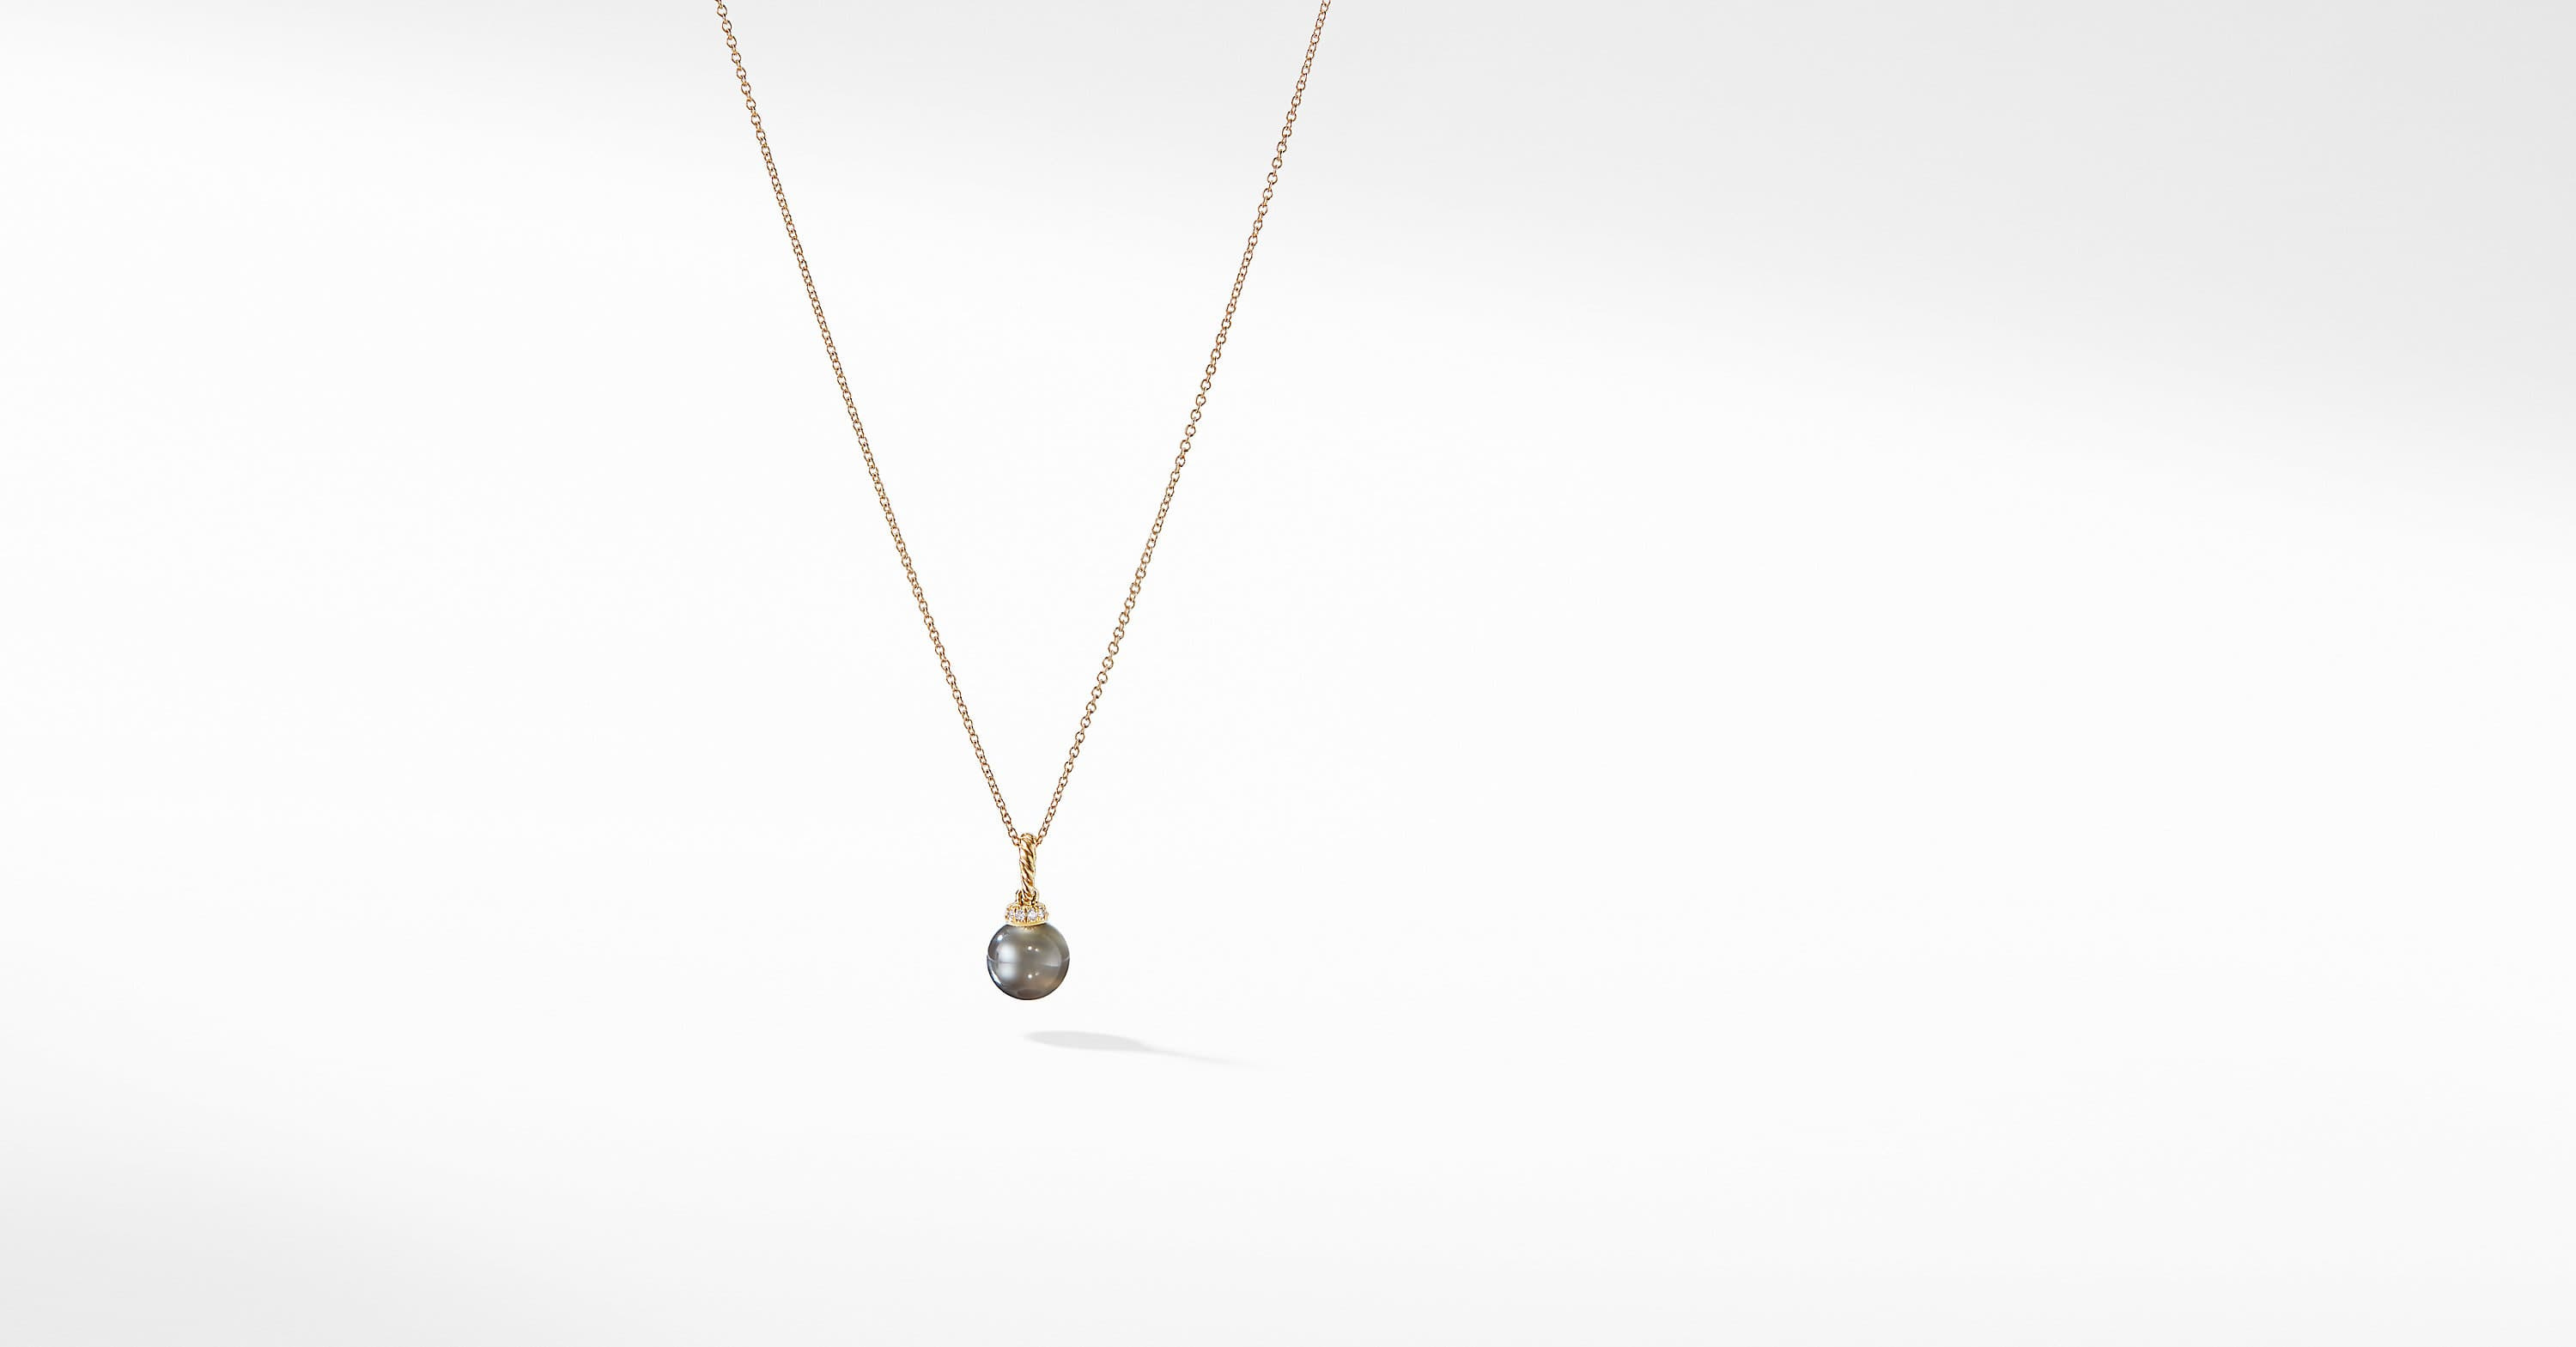 Solari Pendant Necklace with Diamonds in 18K Gold